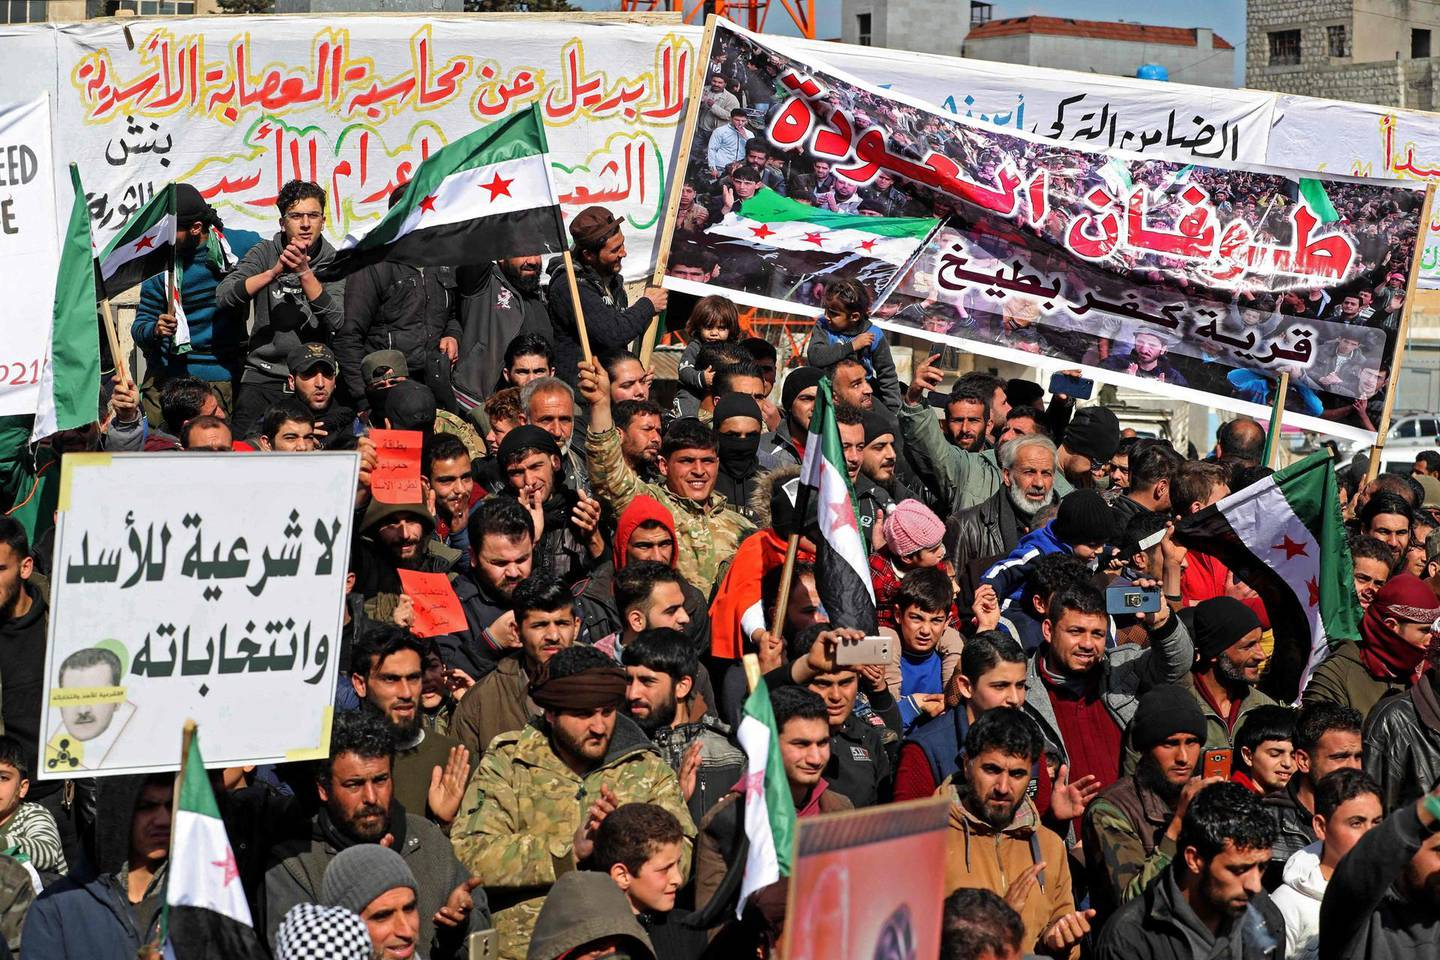 Displaced Syrians demonstrate against President Bashar al-Assad and the upcoming presidential election in the rebel-held city of Idlib on February 19, 2021. / AFP / OMAR HAJ KADOUR